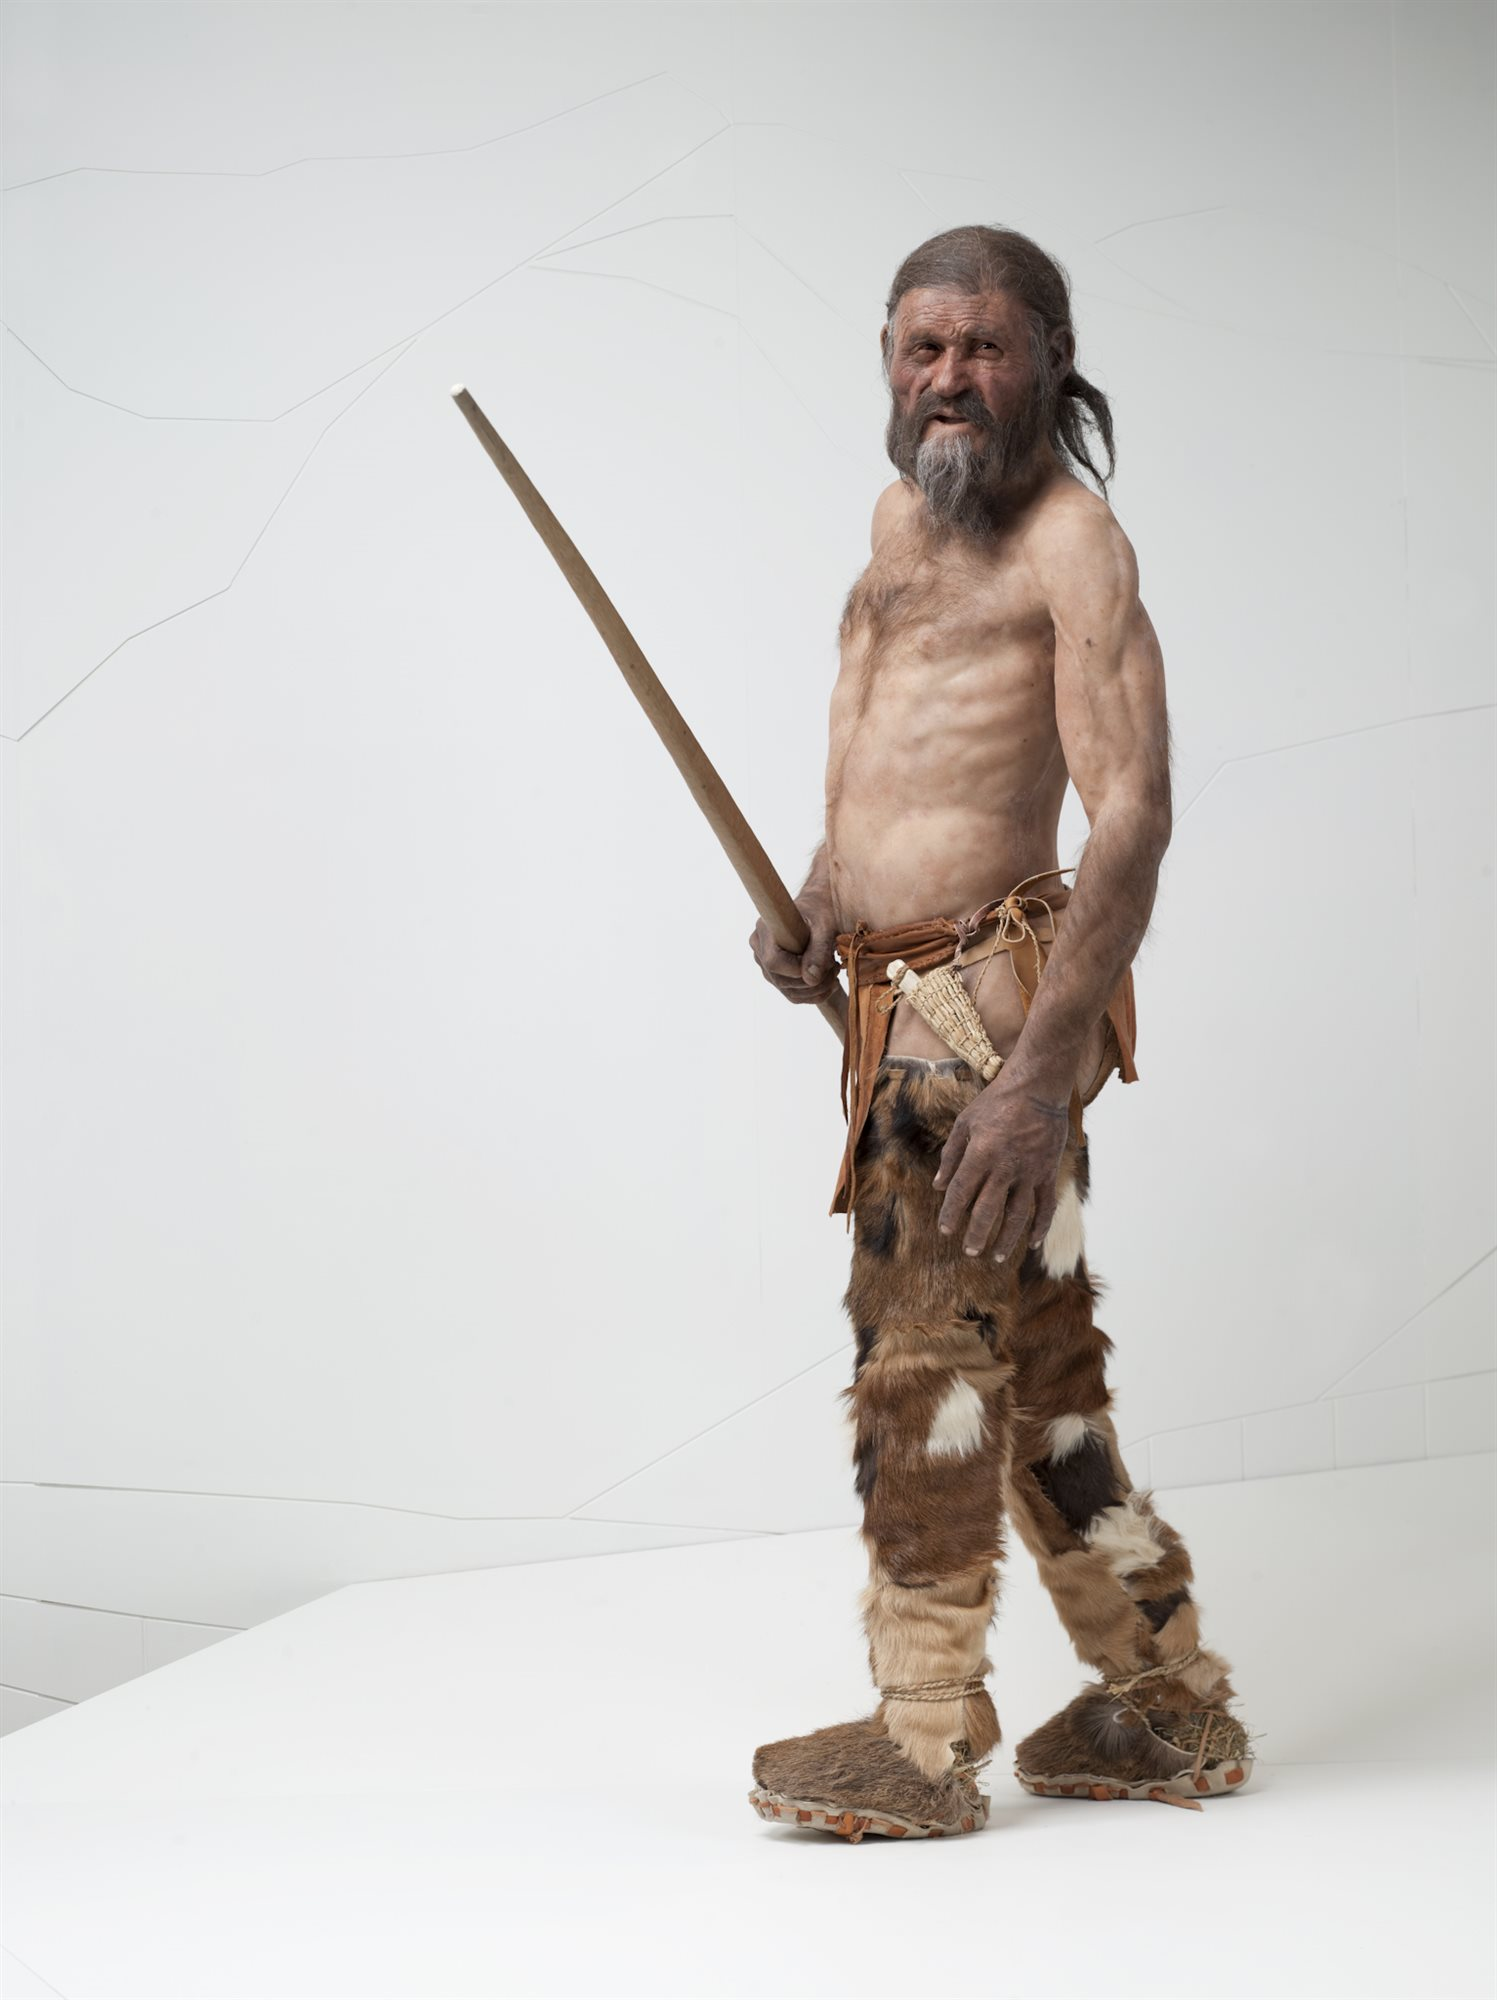 This is the reconstruction of the man who lived 5000 years ago.